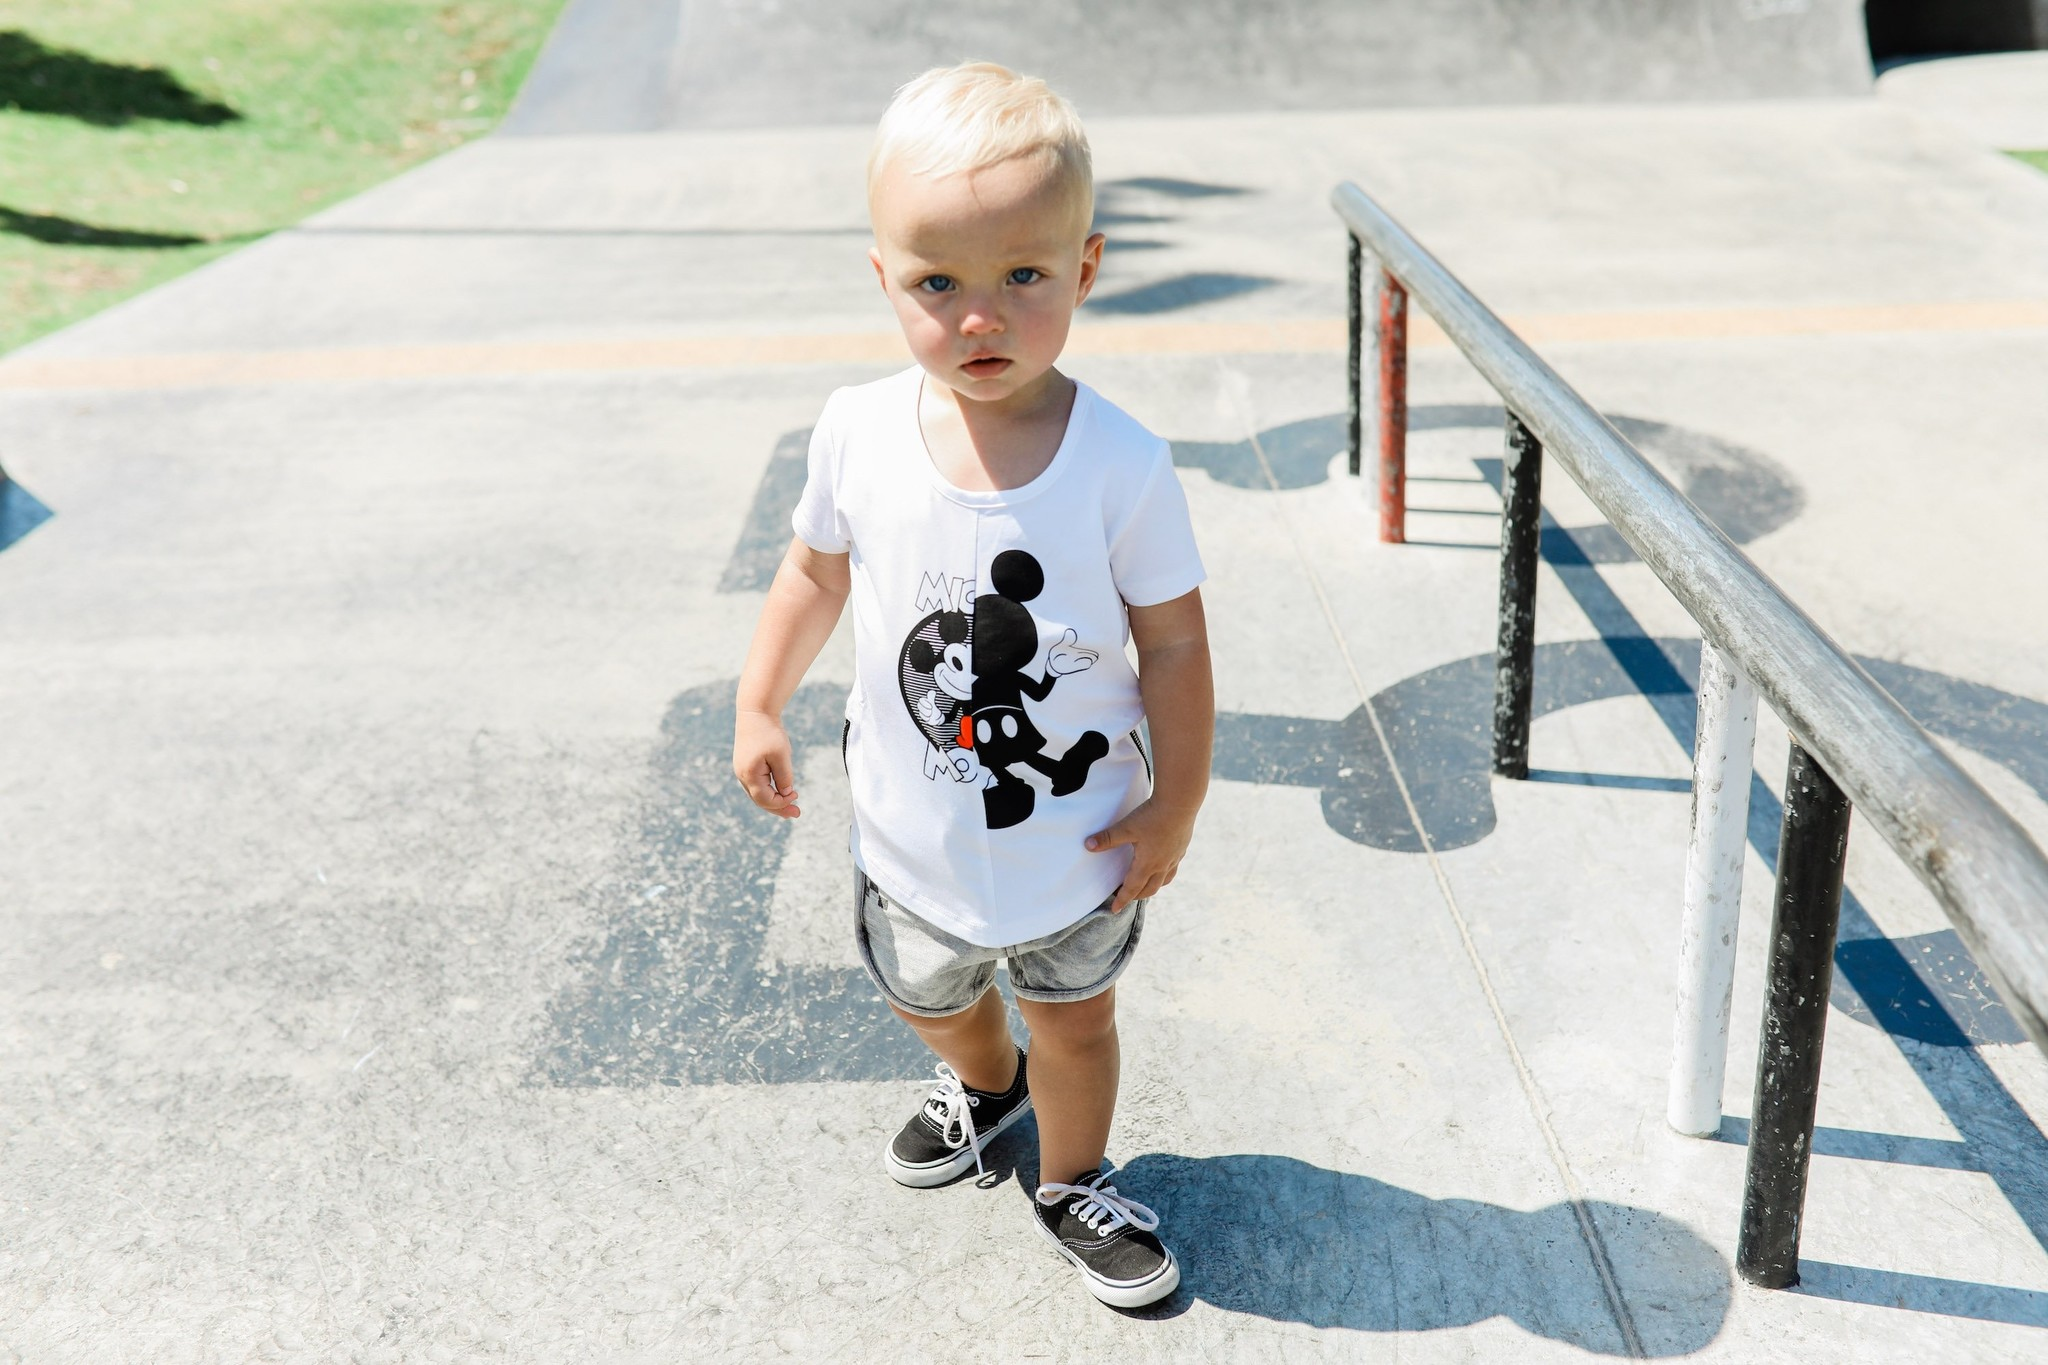 Adam + Yve WHITE BASIC SHIRT FOR BOYS | COOL CLOTHING MICKEY MOUSE | CHILDREN'S CLOTHING